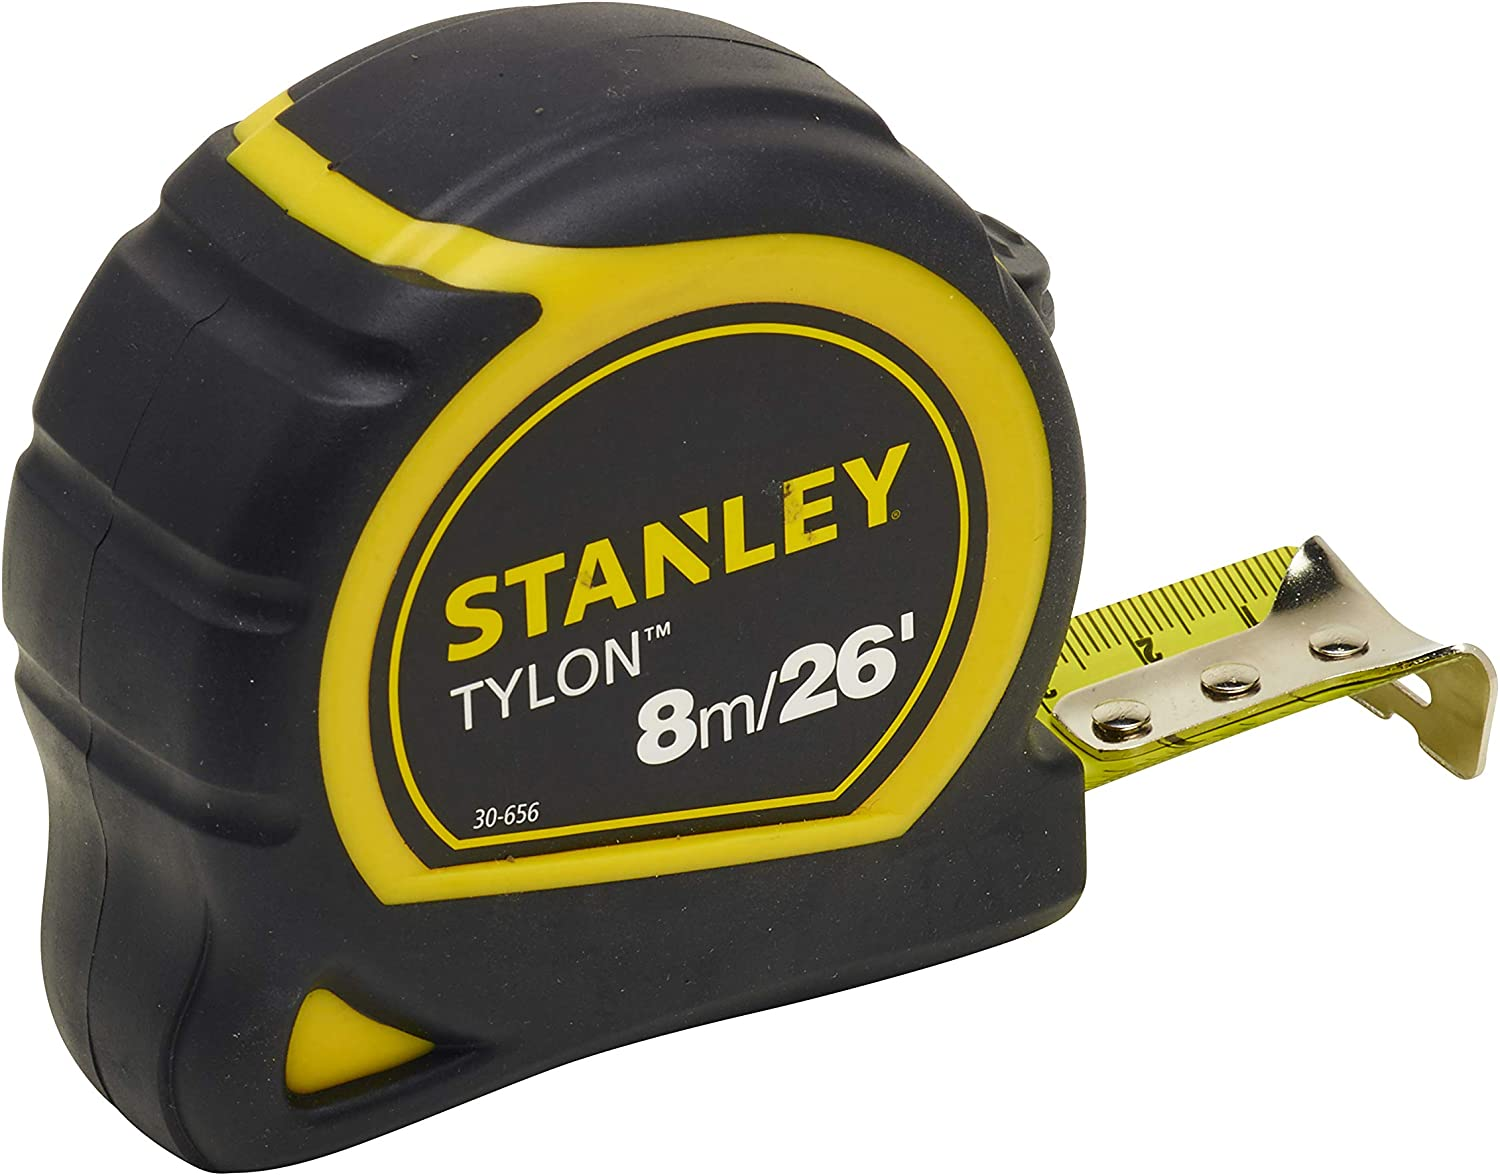 25 mm 2 XStanley STA030656N Pocket Tylon Tape 8 m//26 feet